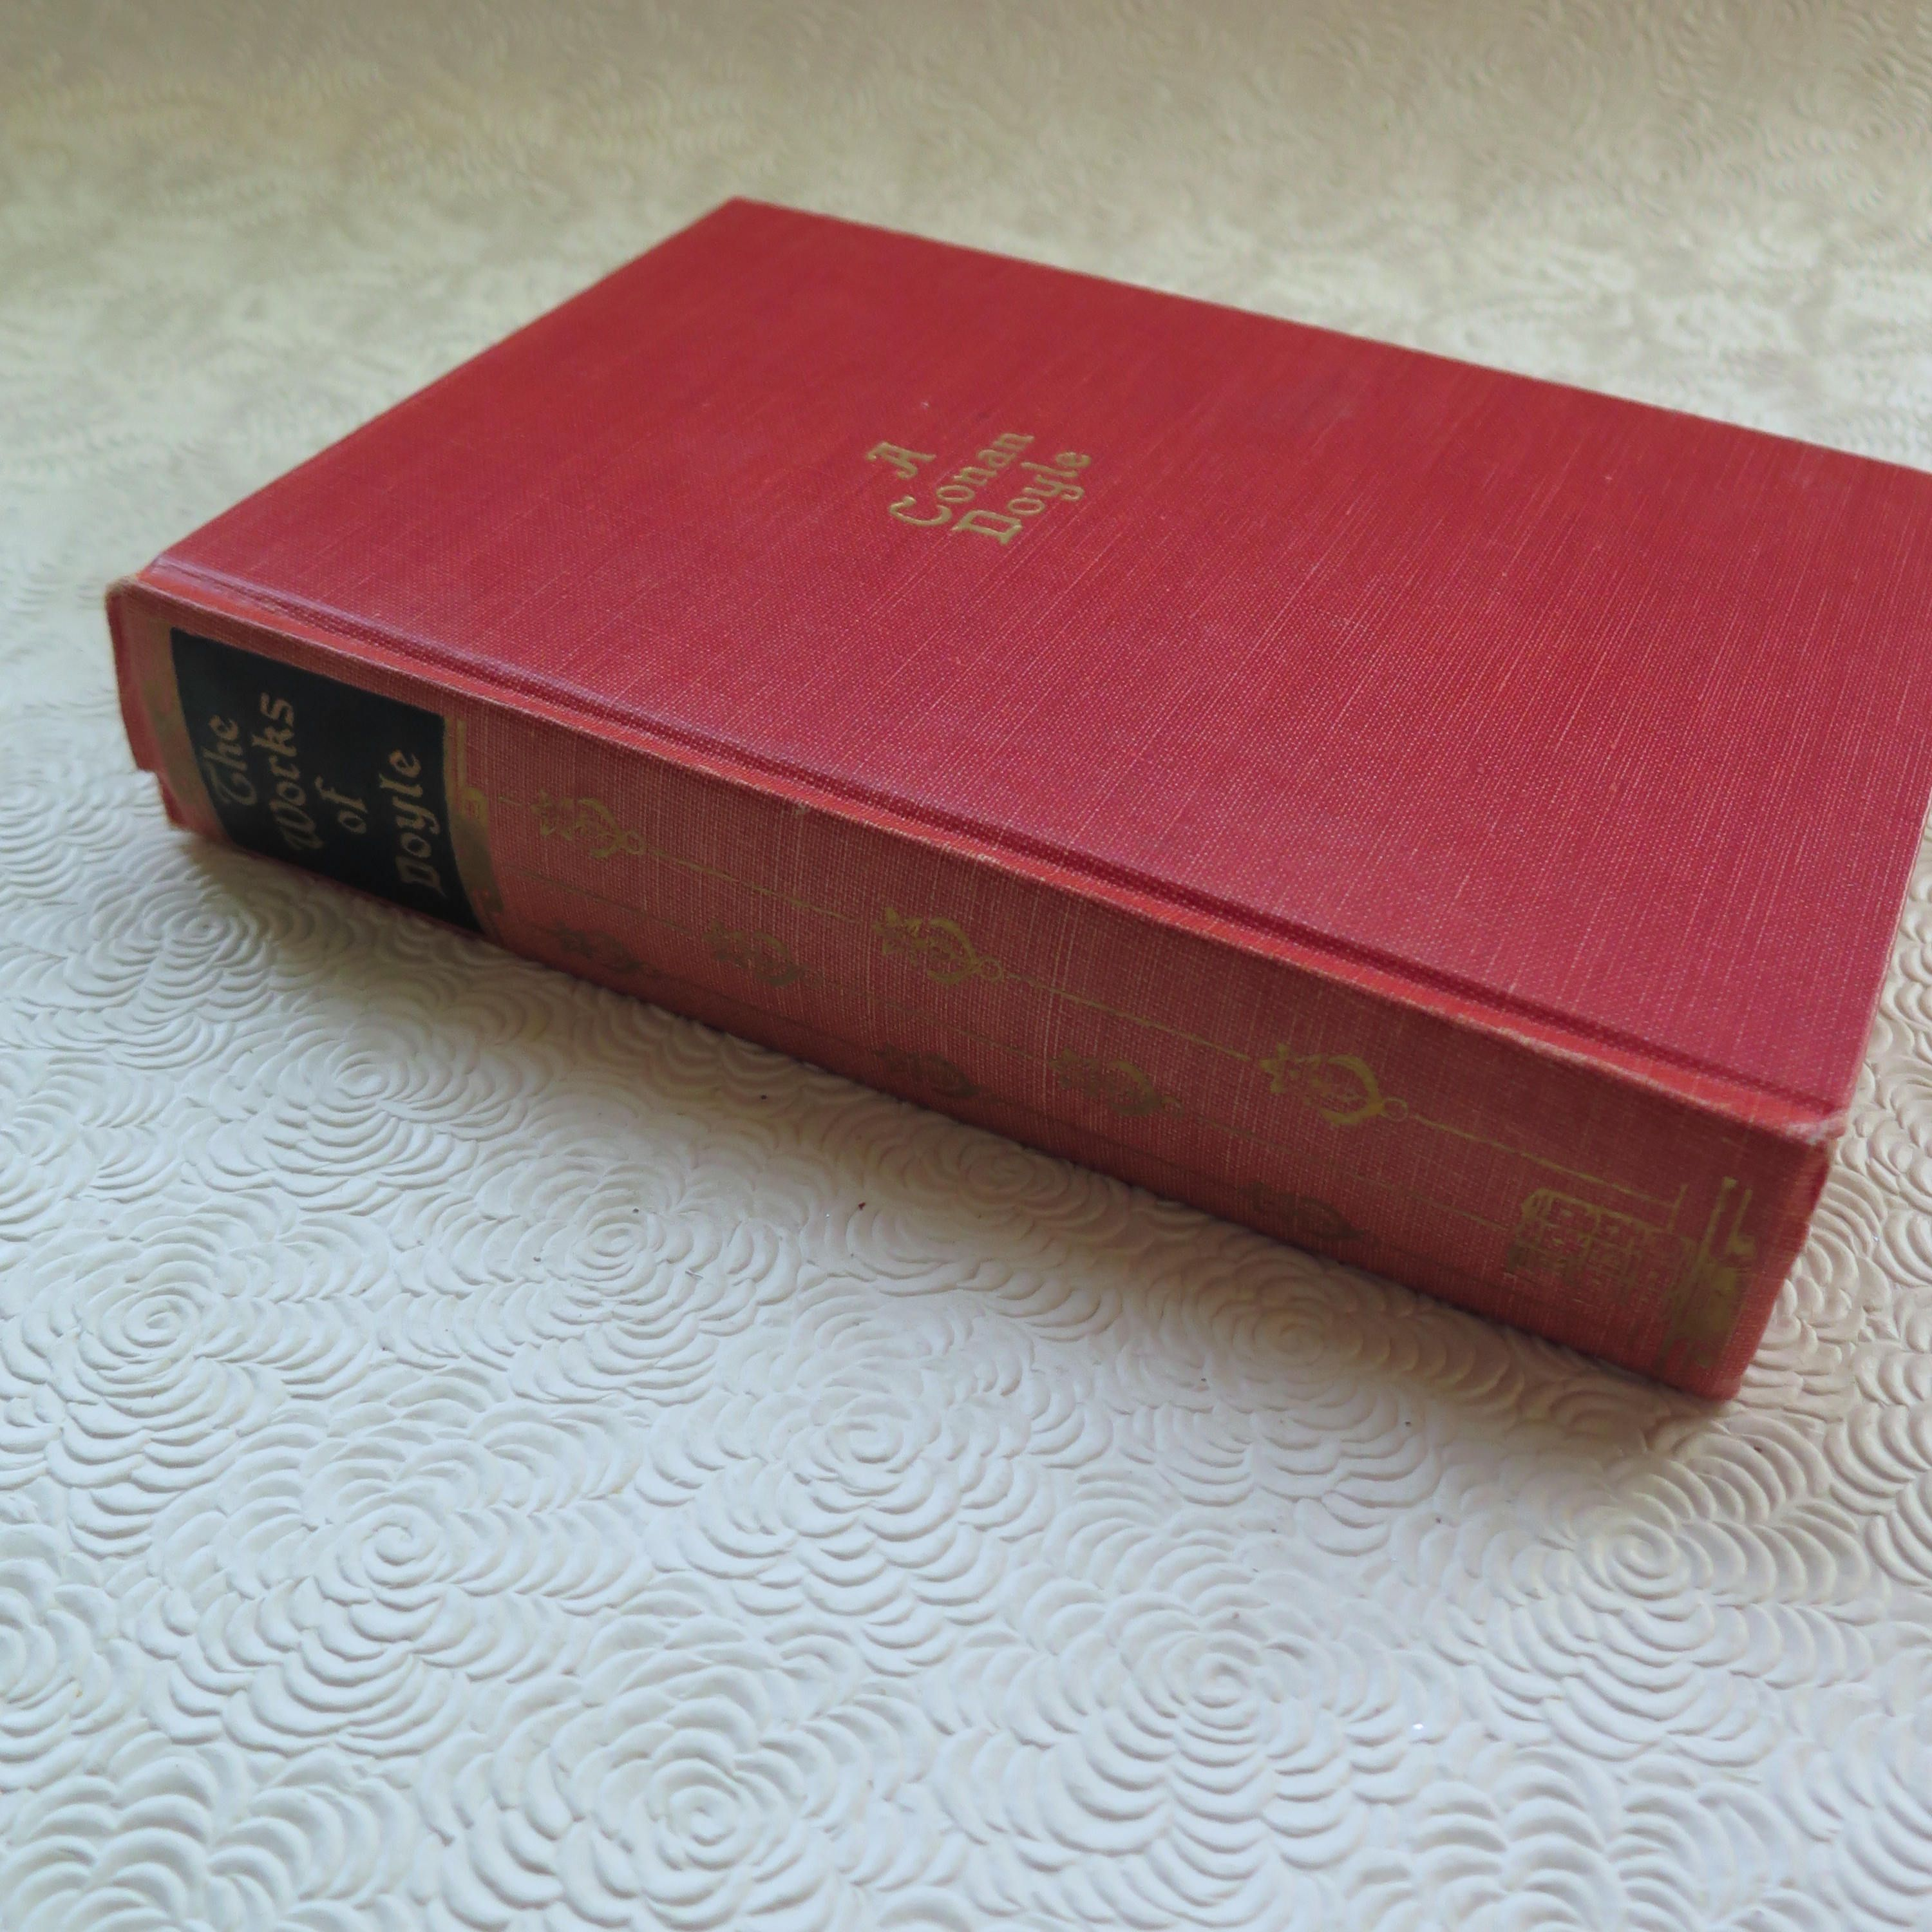 Vintage Sherlock Holmes Book The Works of A. Conan Doyle Arthur Conan Doyle Red Cloth 1928 Hardback Holmes One Volume Collection Dr. Watson